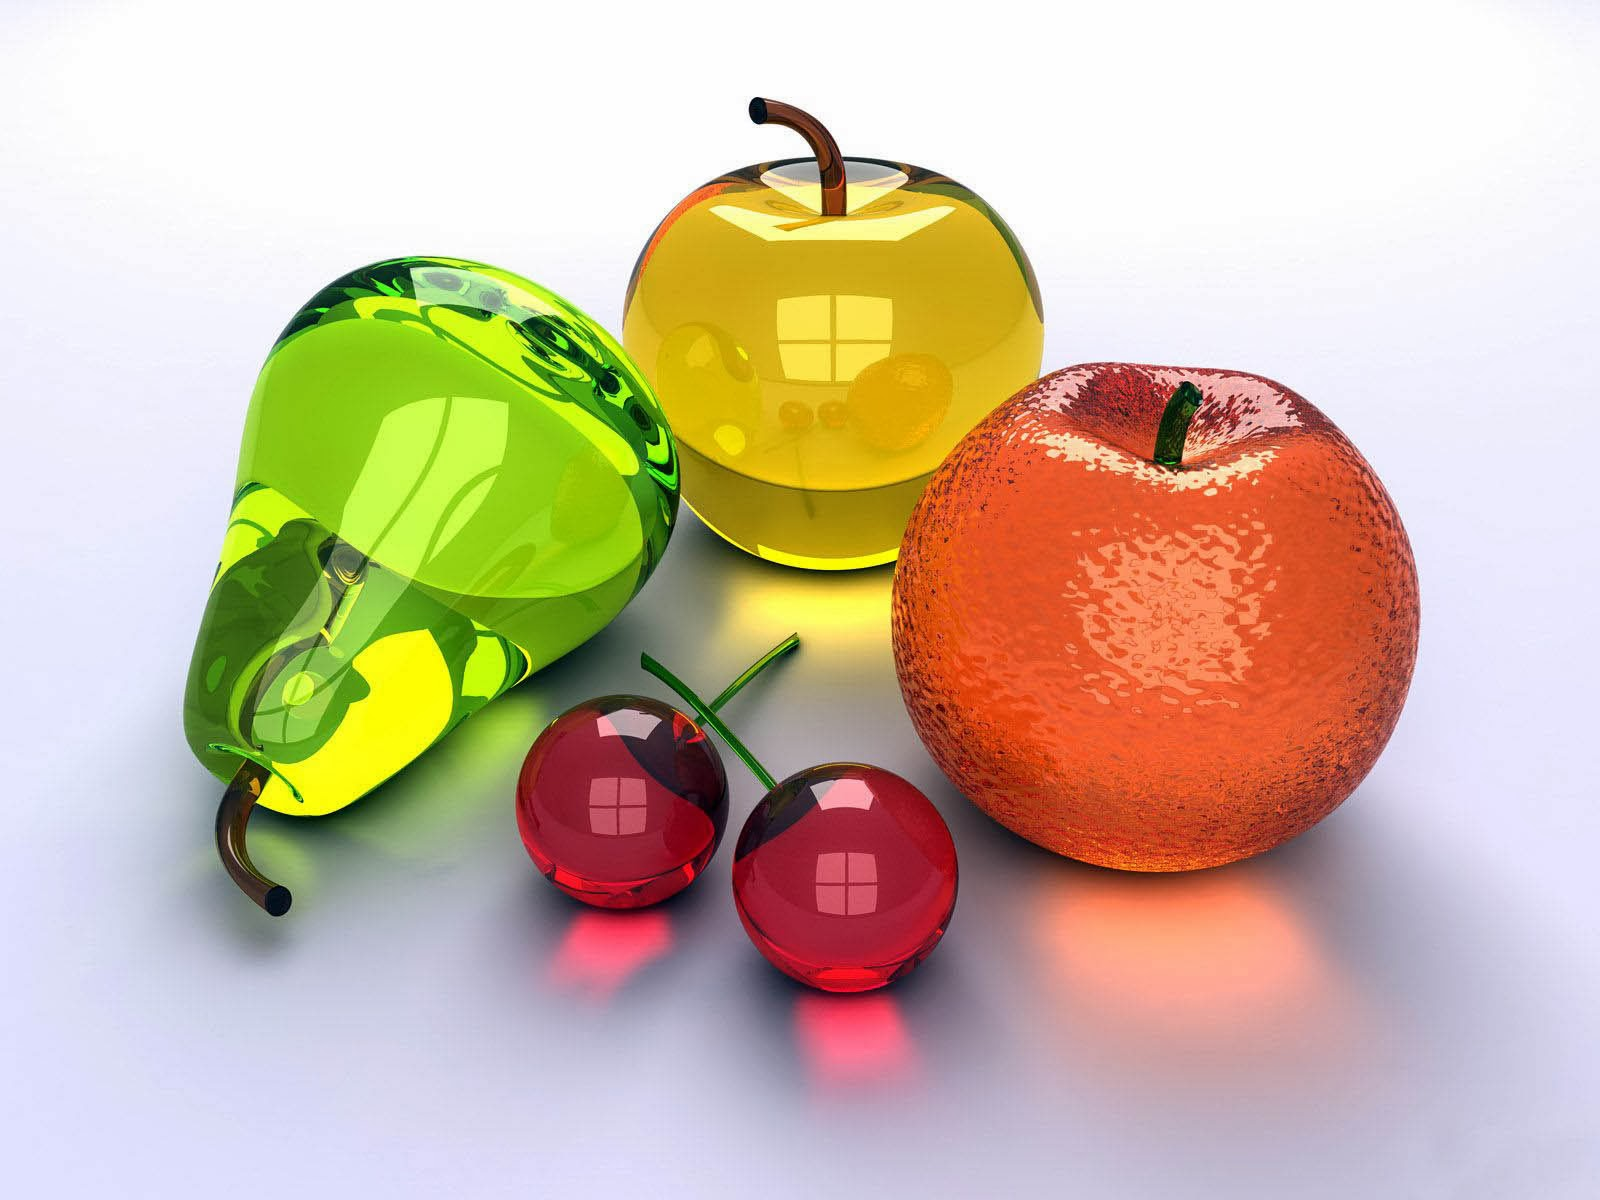 Tag Glass Fruit Wallpapers Backgrounds Photos Images And Pictures For Free